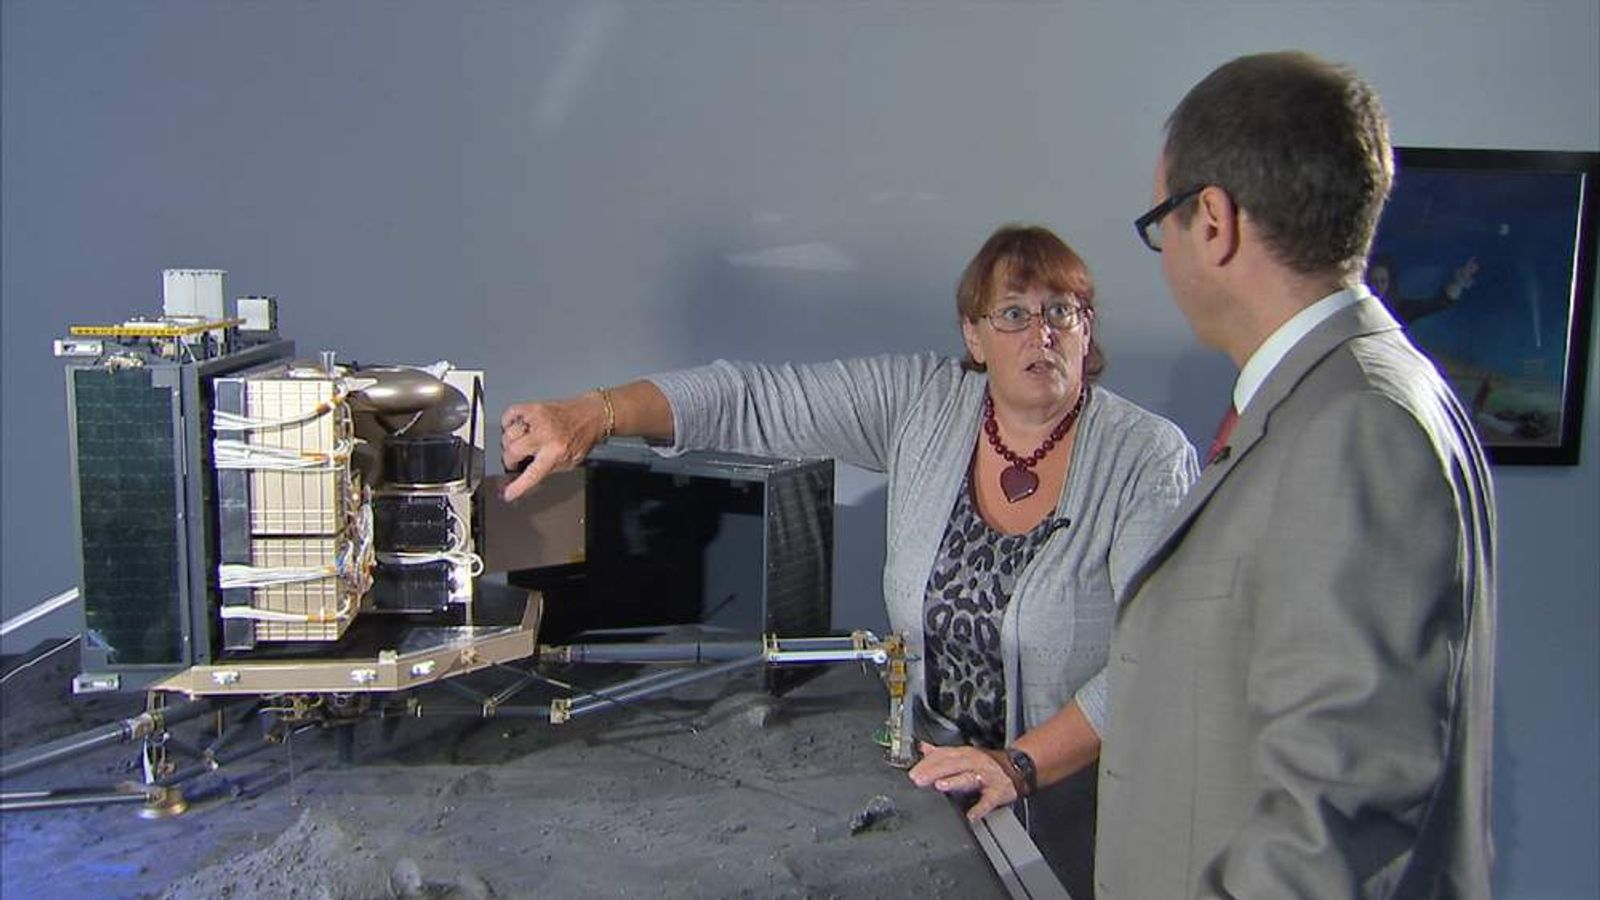 060814 ROSETTA COMET SPACE MOORE AND PACE SCIENTIST PROF MONICA GRADY